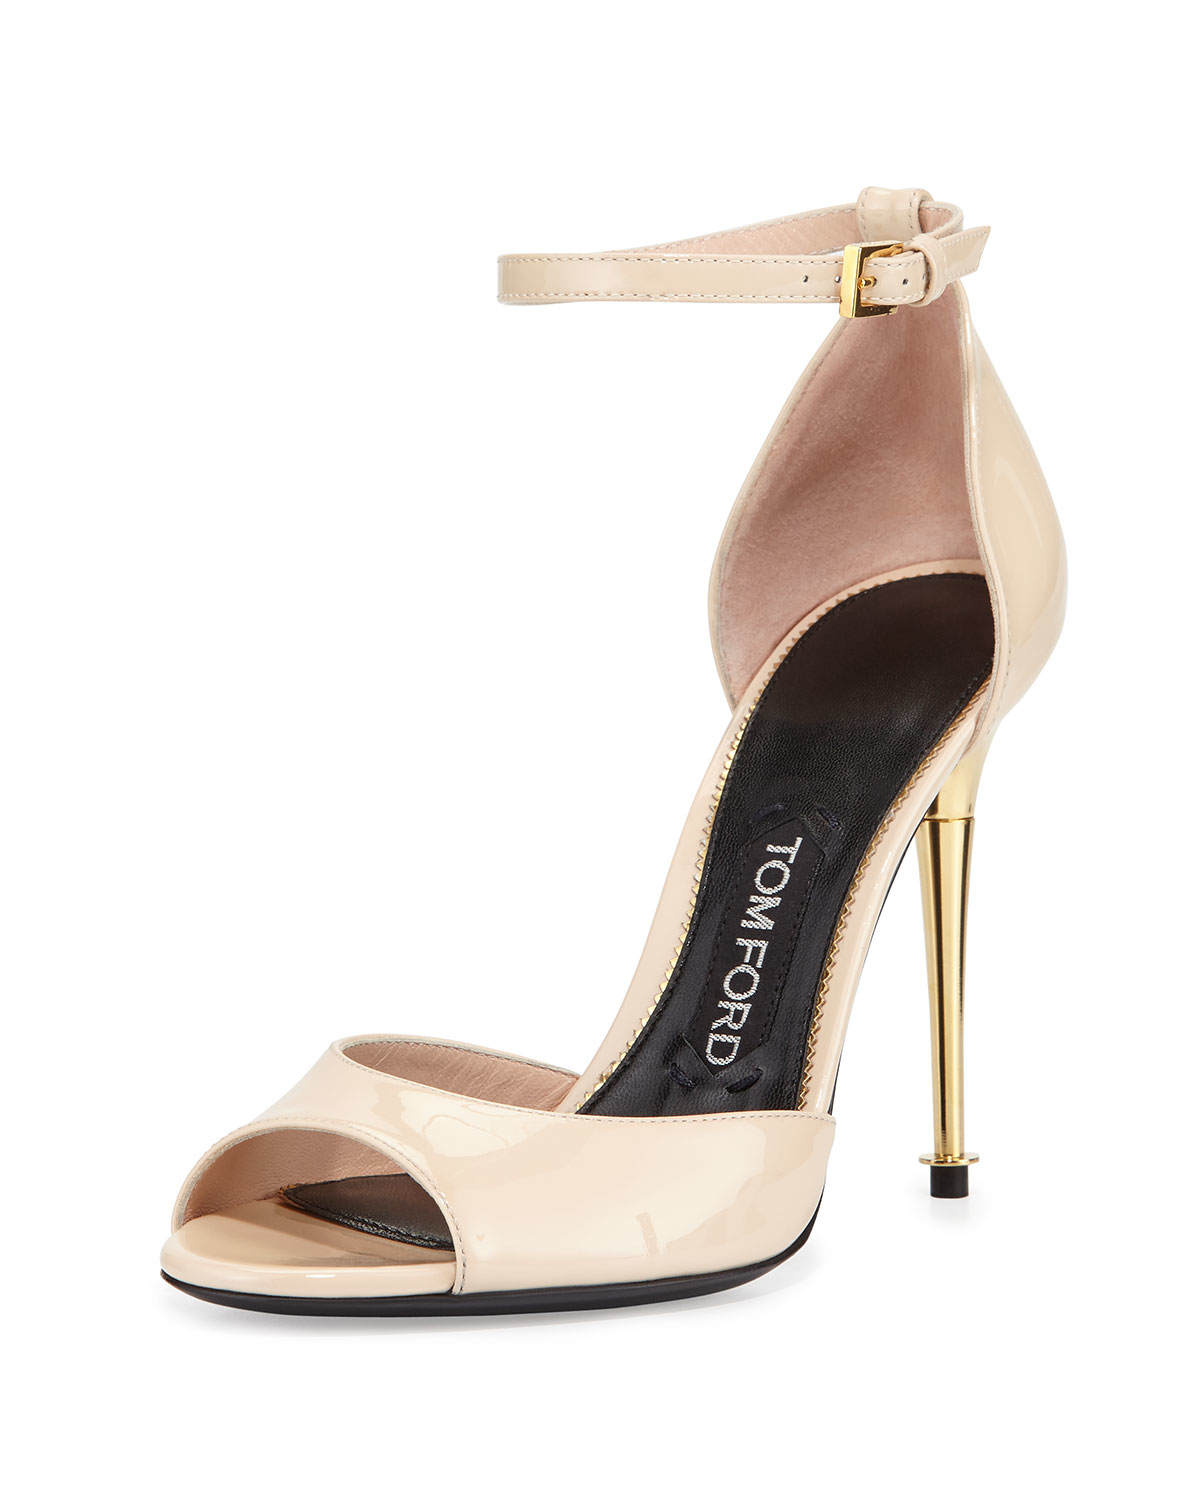 7e6f50383d2 Lyst - Tom Ford Patent-Leather D orsay Sandals in Natural